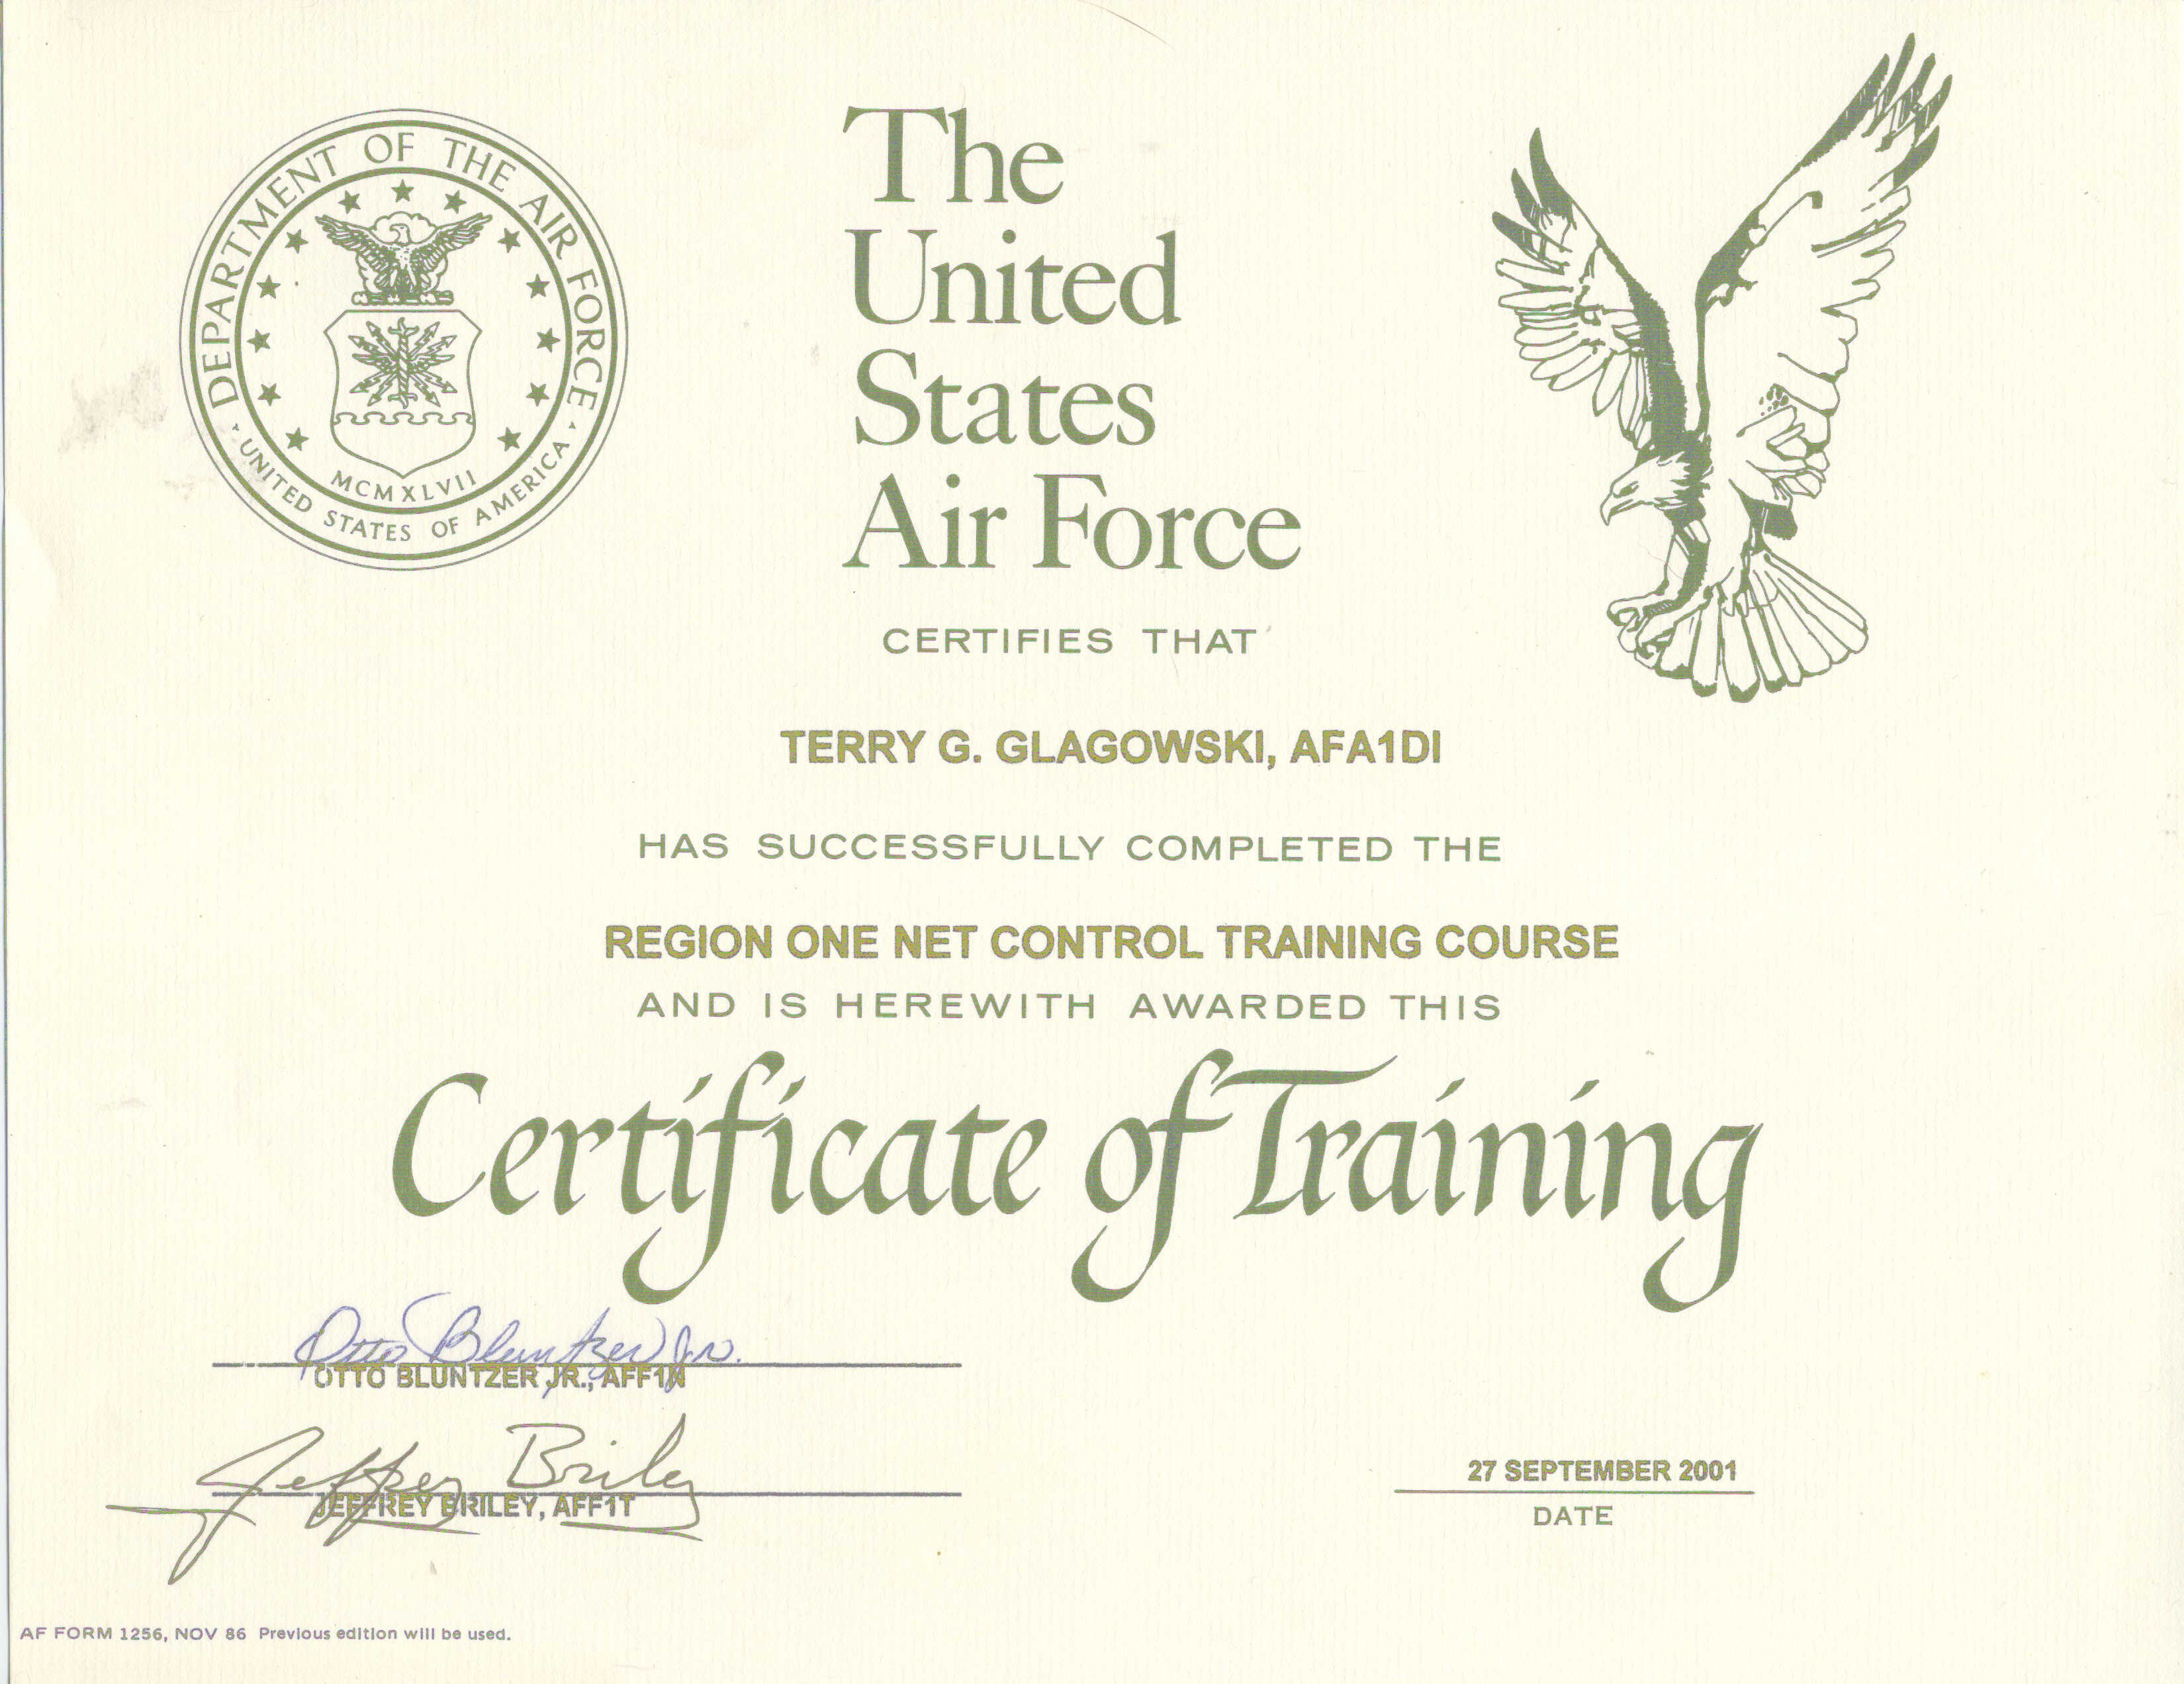 Af training certificate template images certificate design and usaf certificate training template gallery certificate design air force award certificate template choice image certificate sample alramifo Image collections